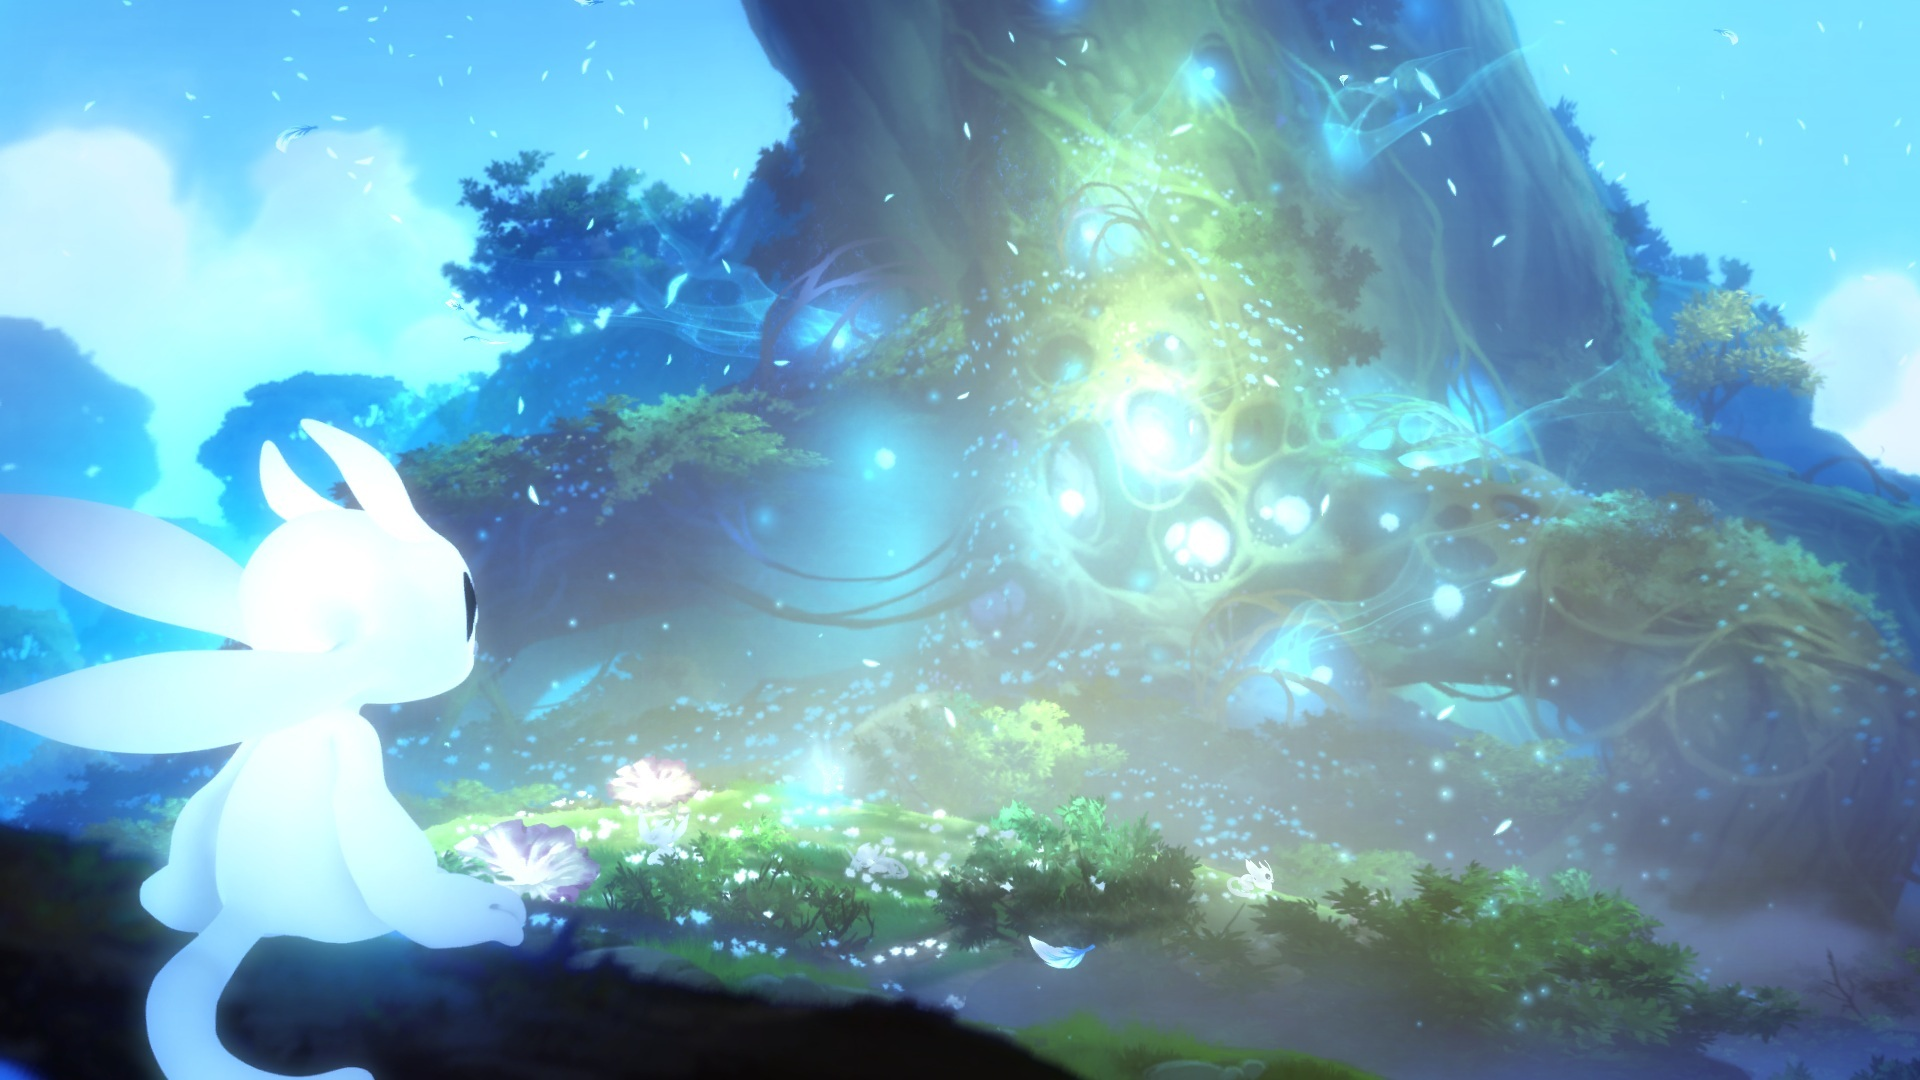 Great Ori And The Blind Forest Wallpaper